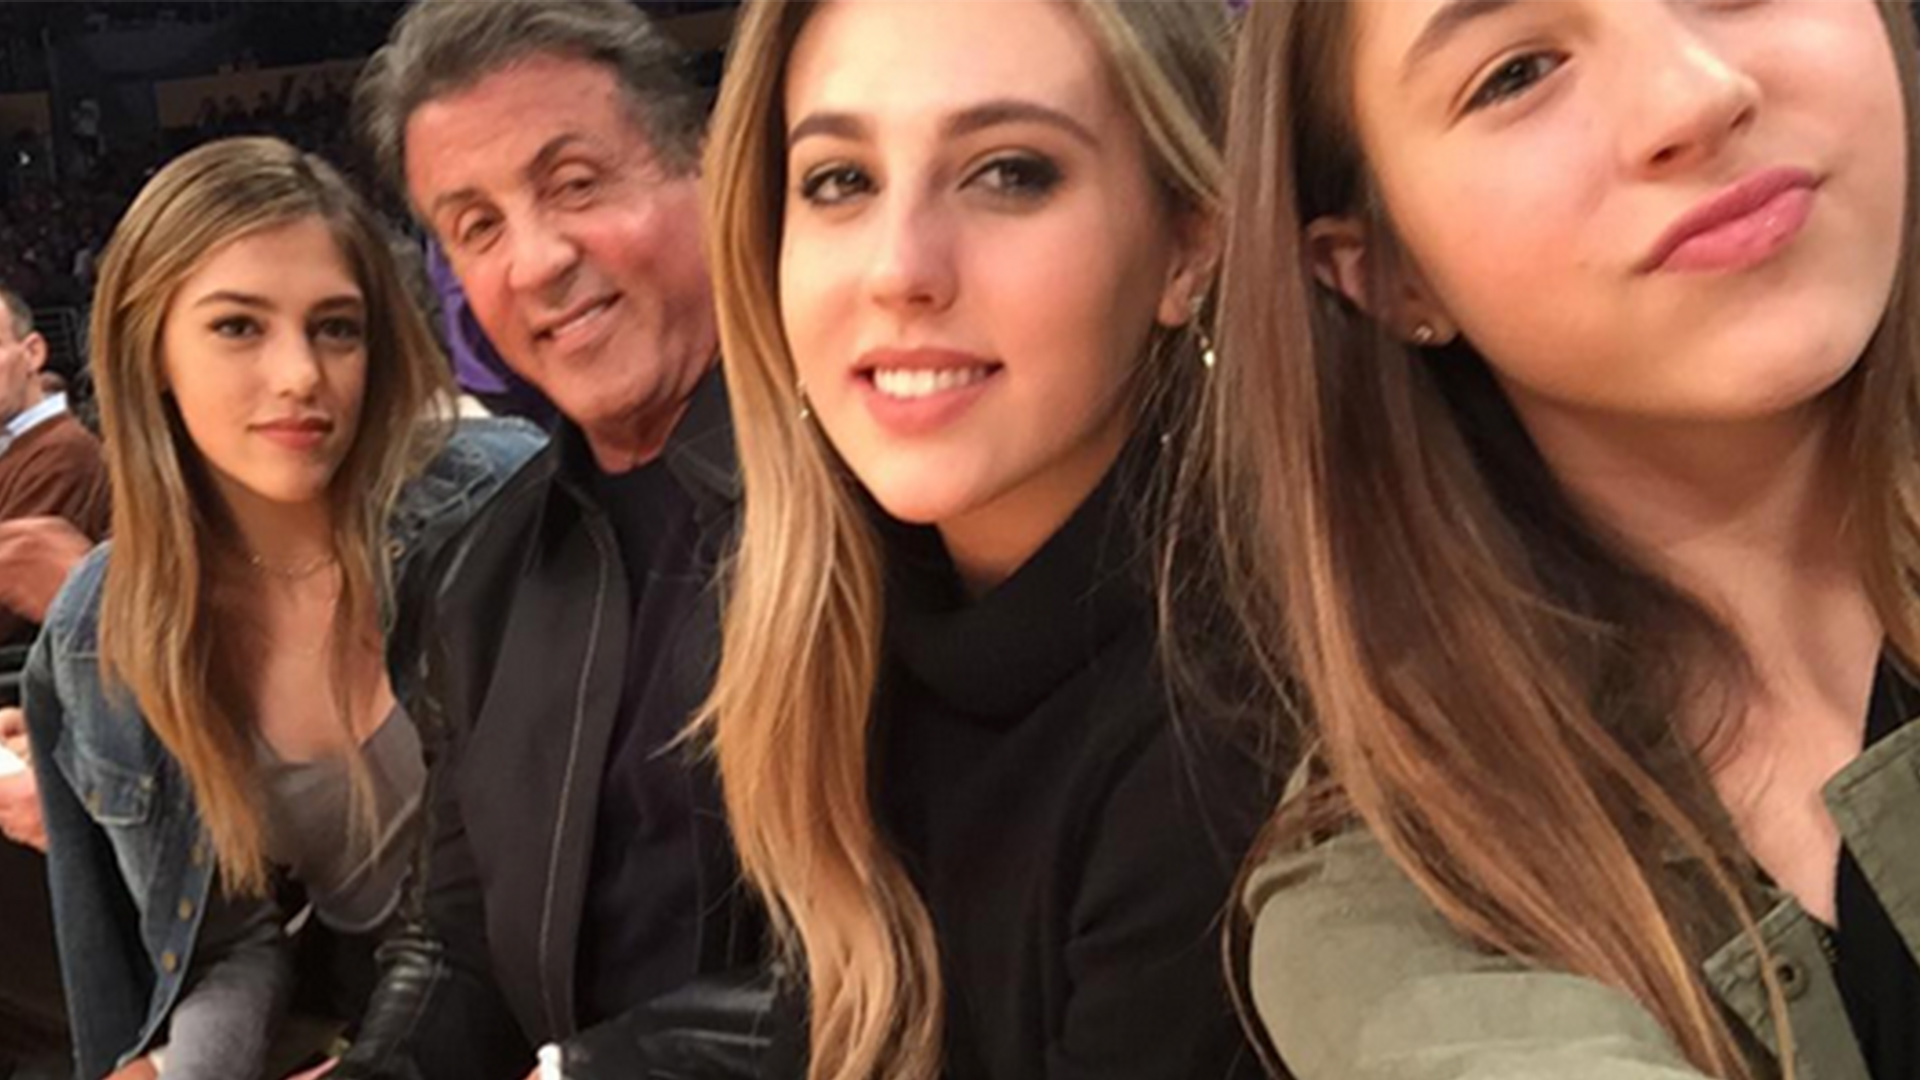 Sylvester Stallone Joined by Wife Jennifer and Daughter Sistine at Cannes Career Retrospective